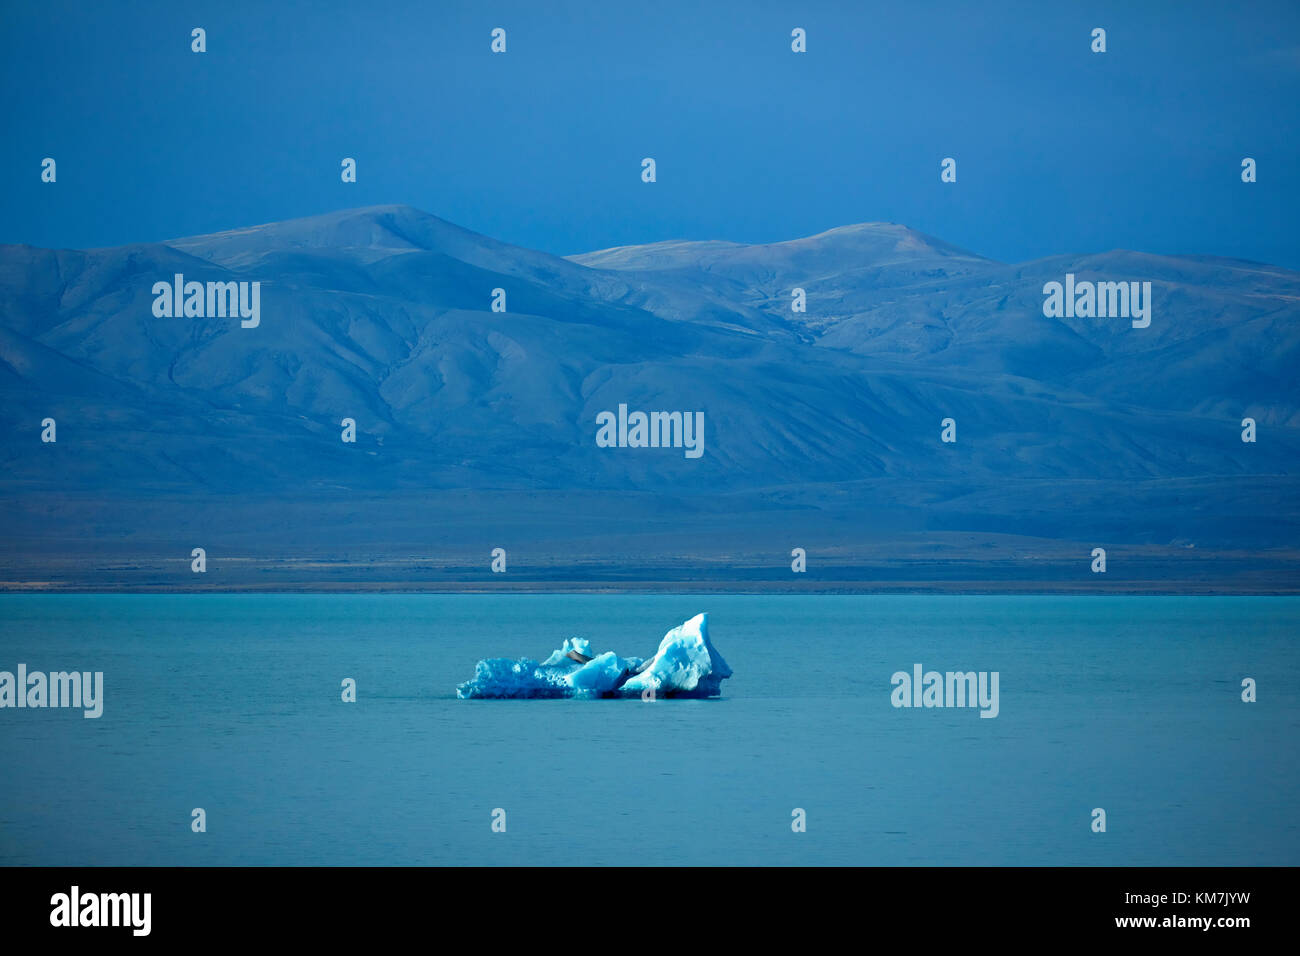 Iceberg in Lago Viedma, Patagonia, Argentina, South America - Stock Image